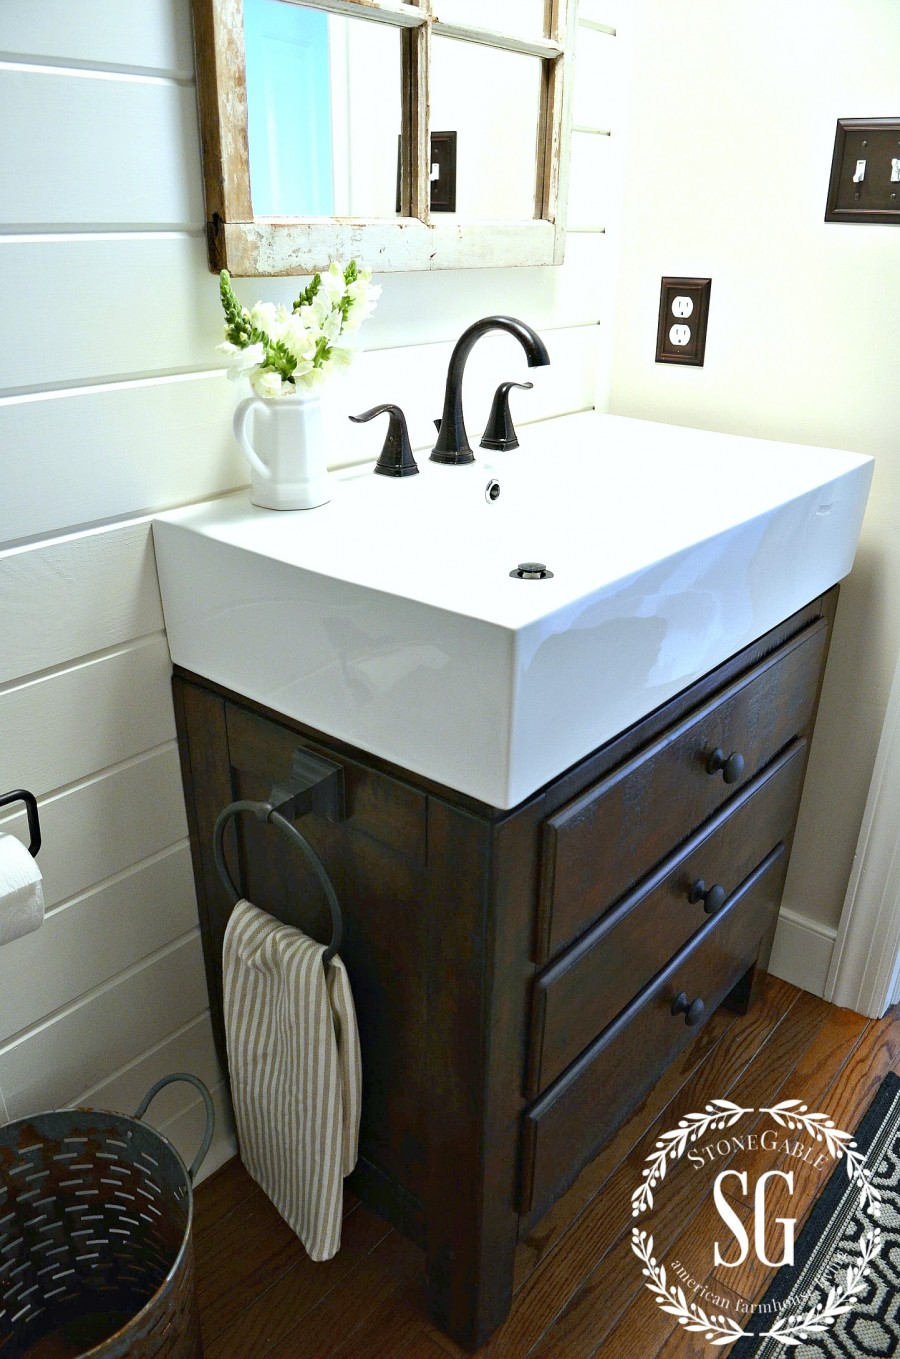 Farmhouse powder room reveal stonegable - Powder room sink ideas ...